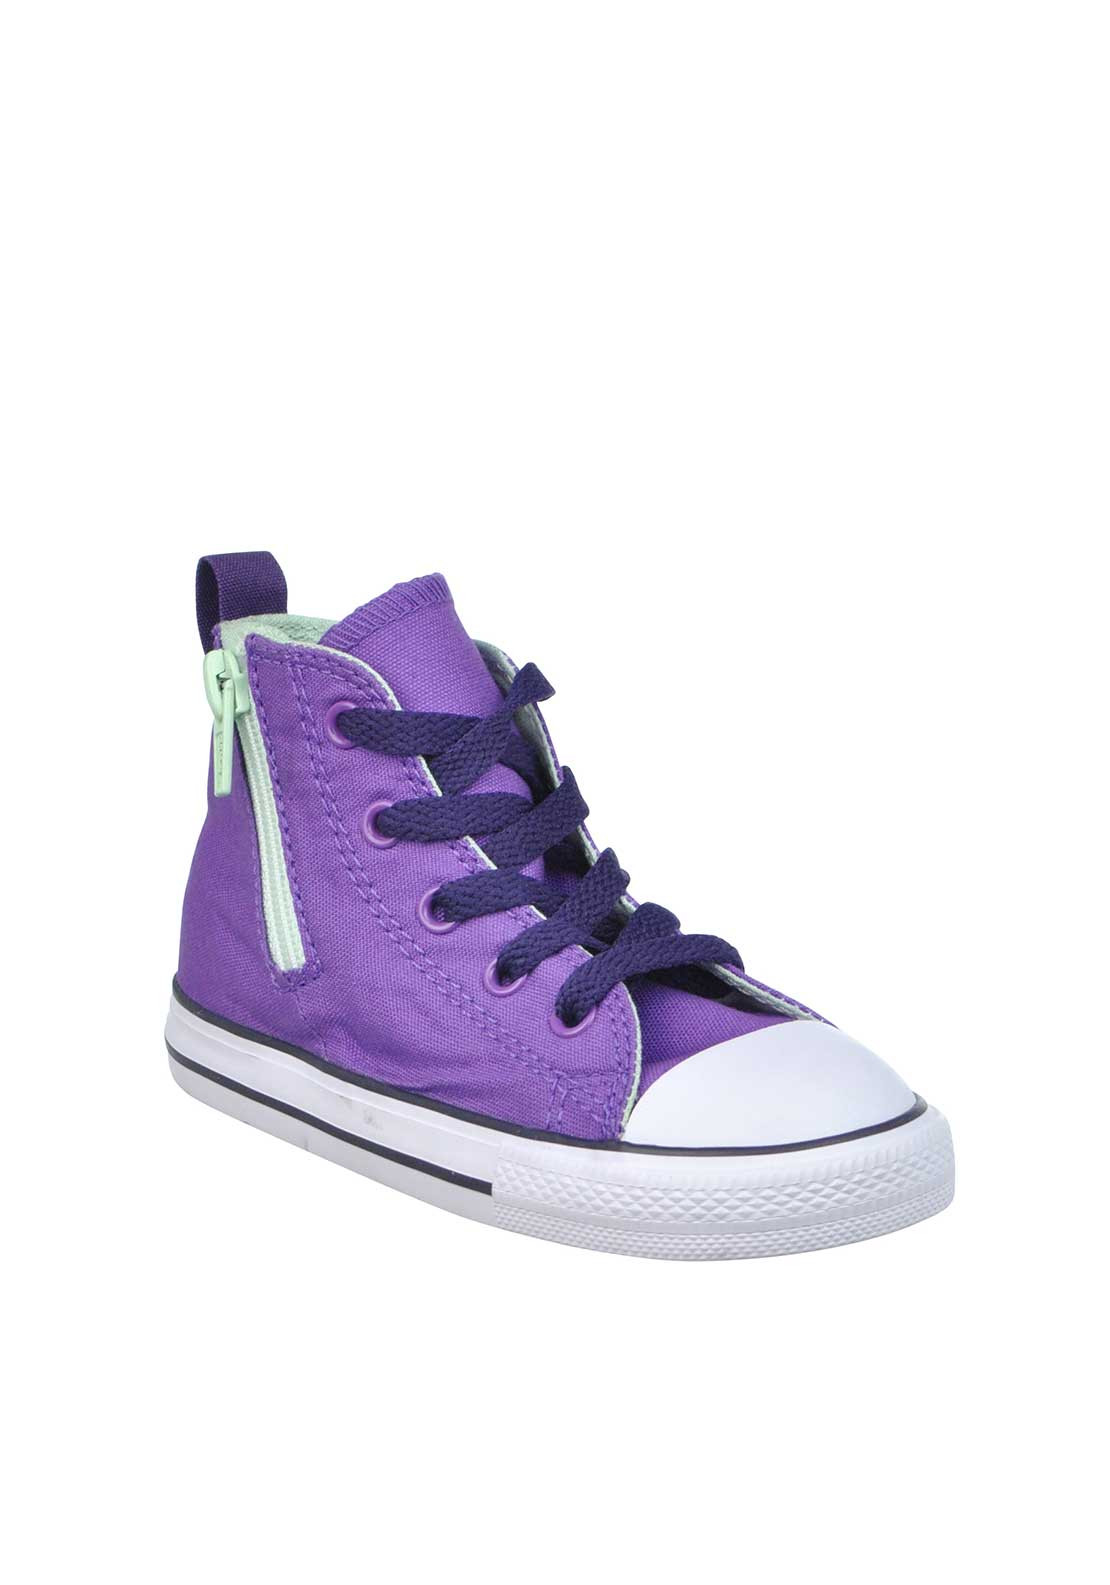 Converse Baby Girls All Star Chuck Taylor Zip High Top Trainers, Purple